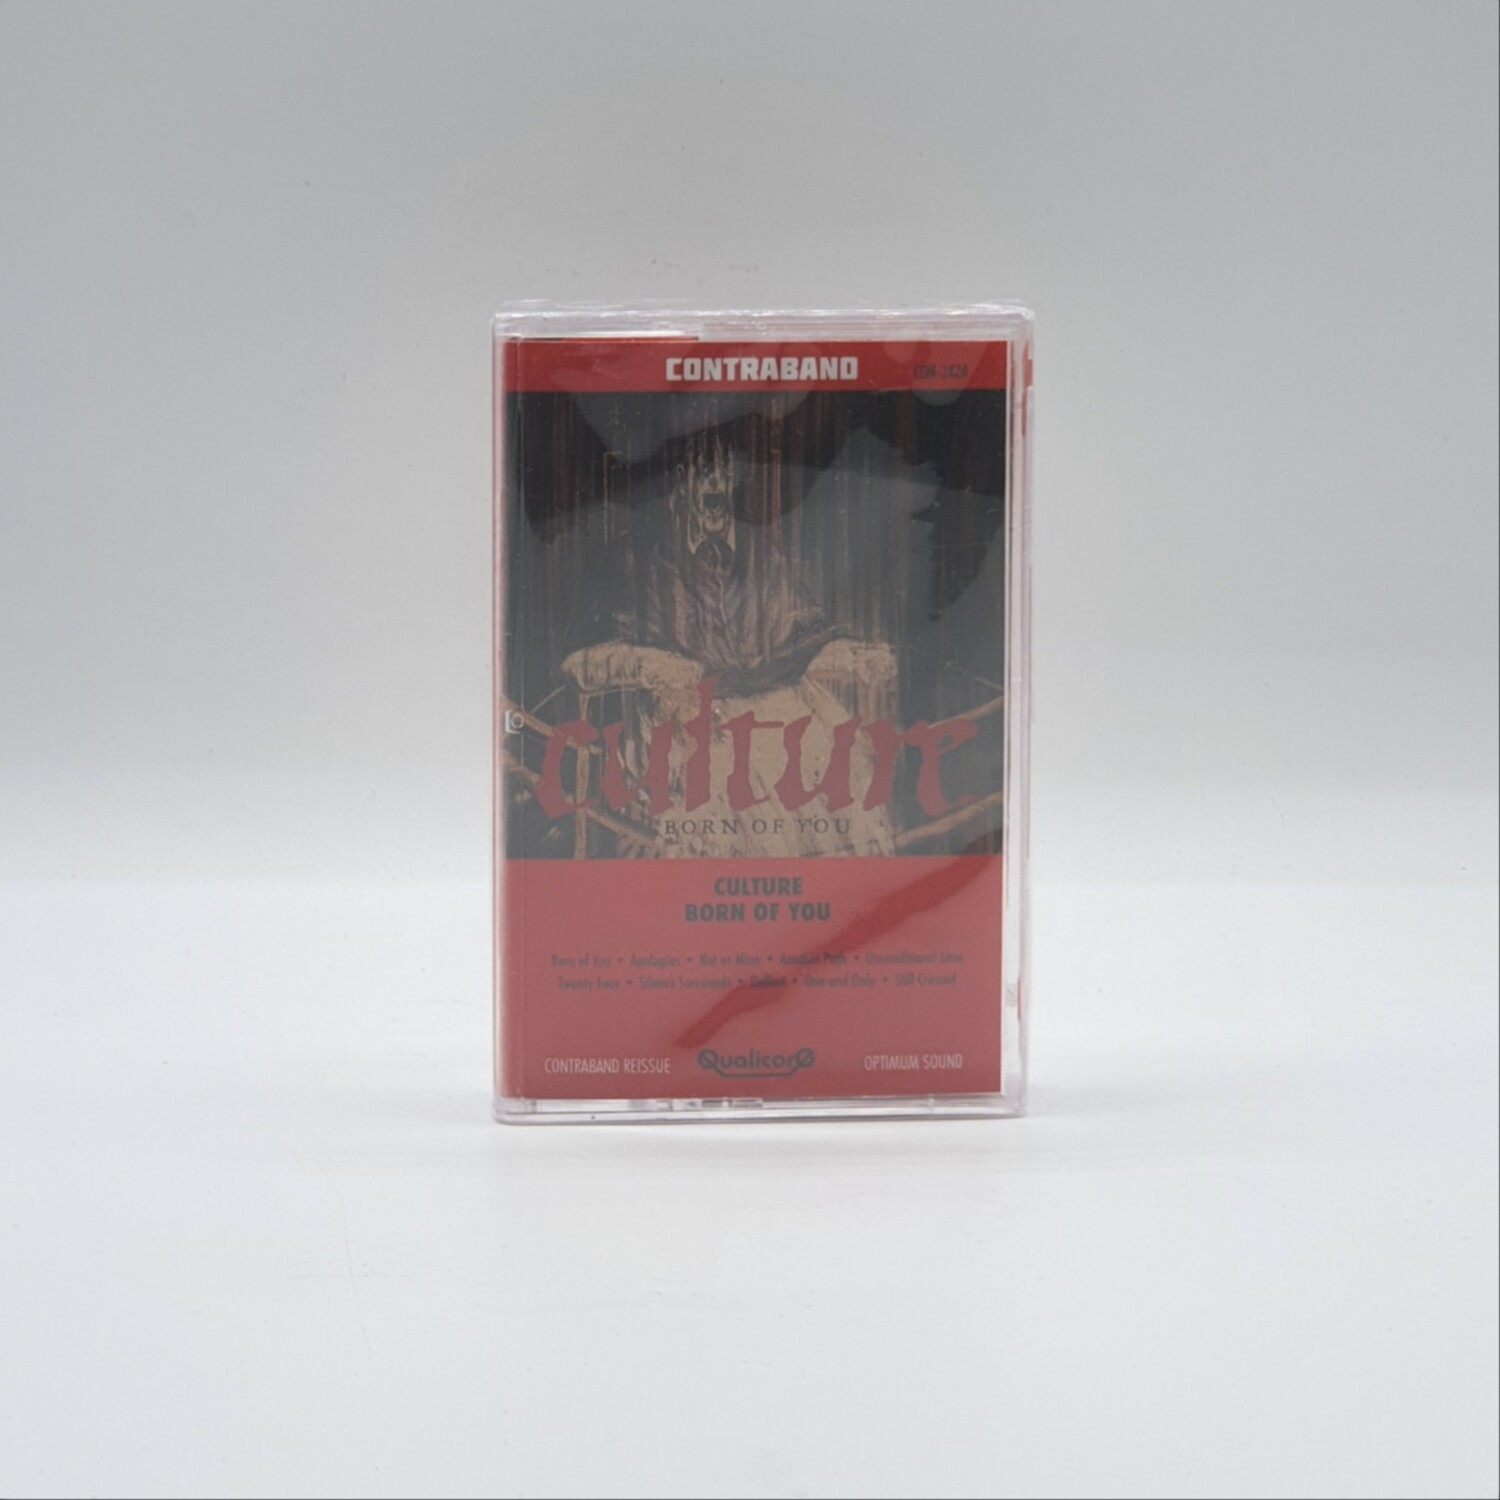 CULTURE -BORN OF YOU- CASSETTE (WHITE TAPE)